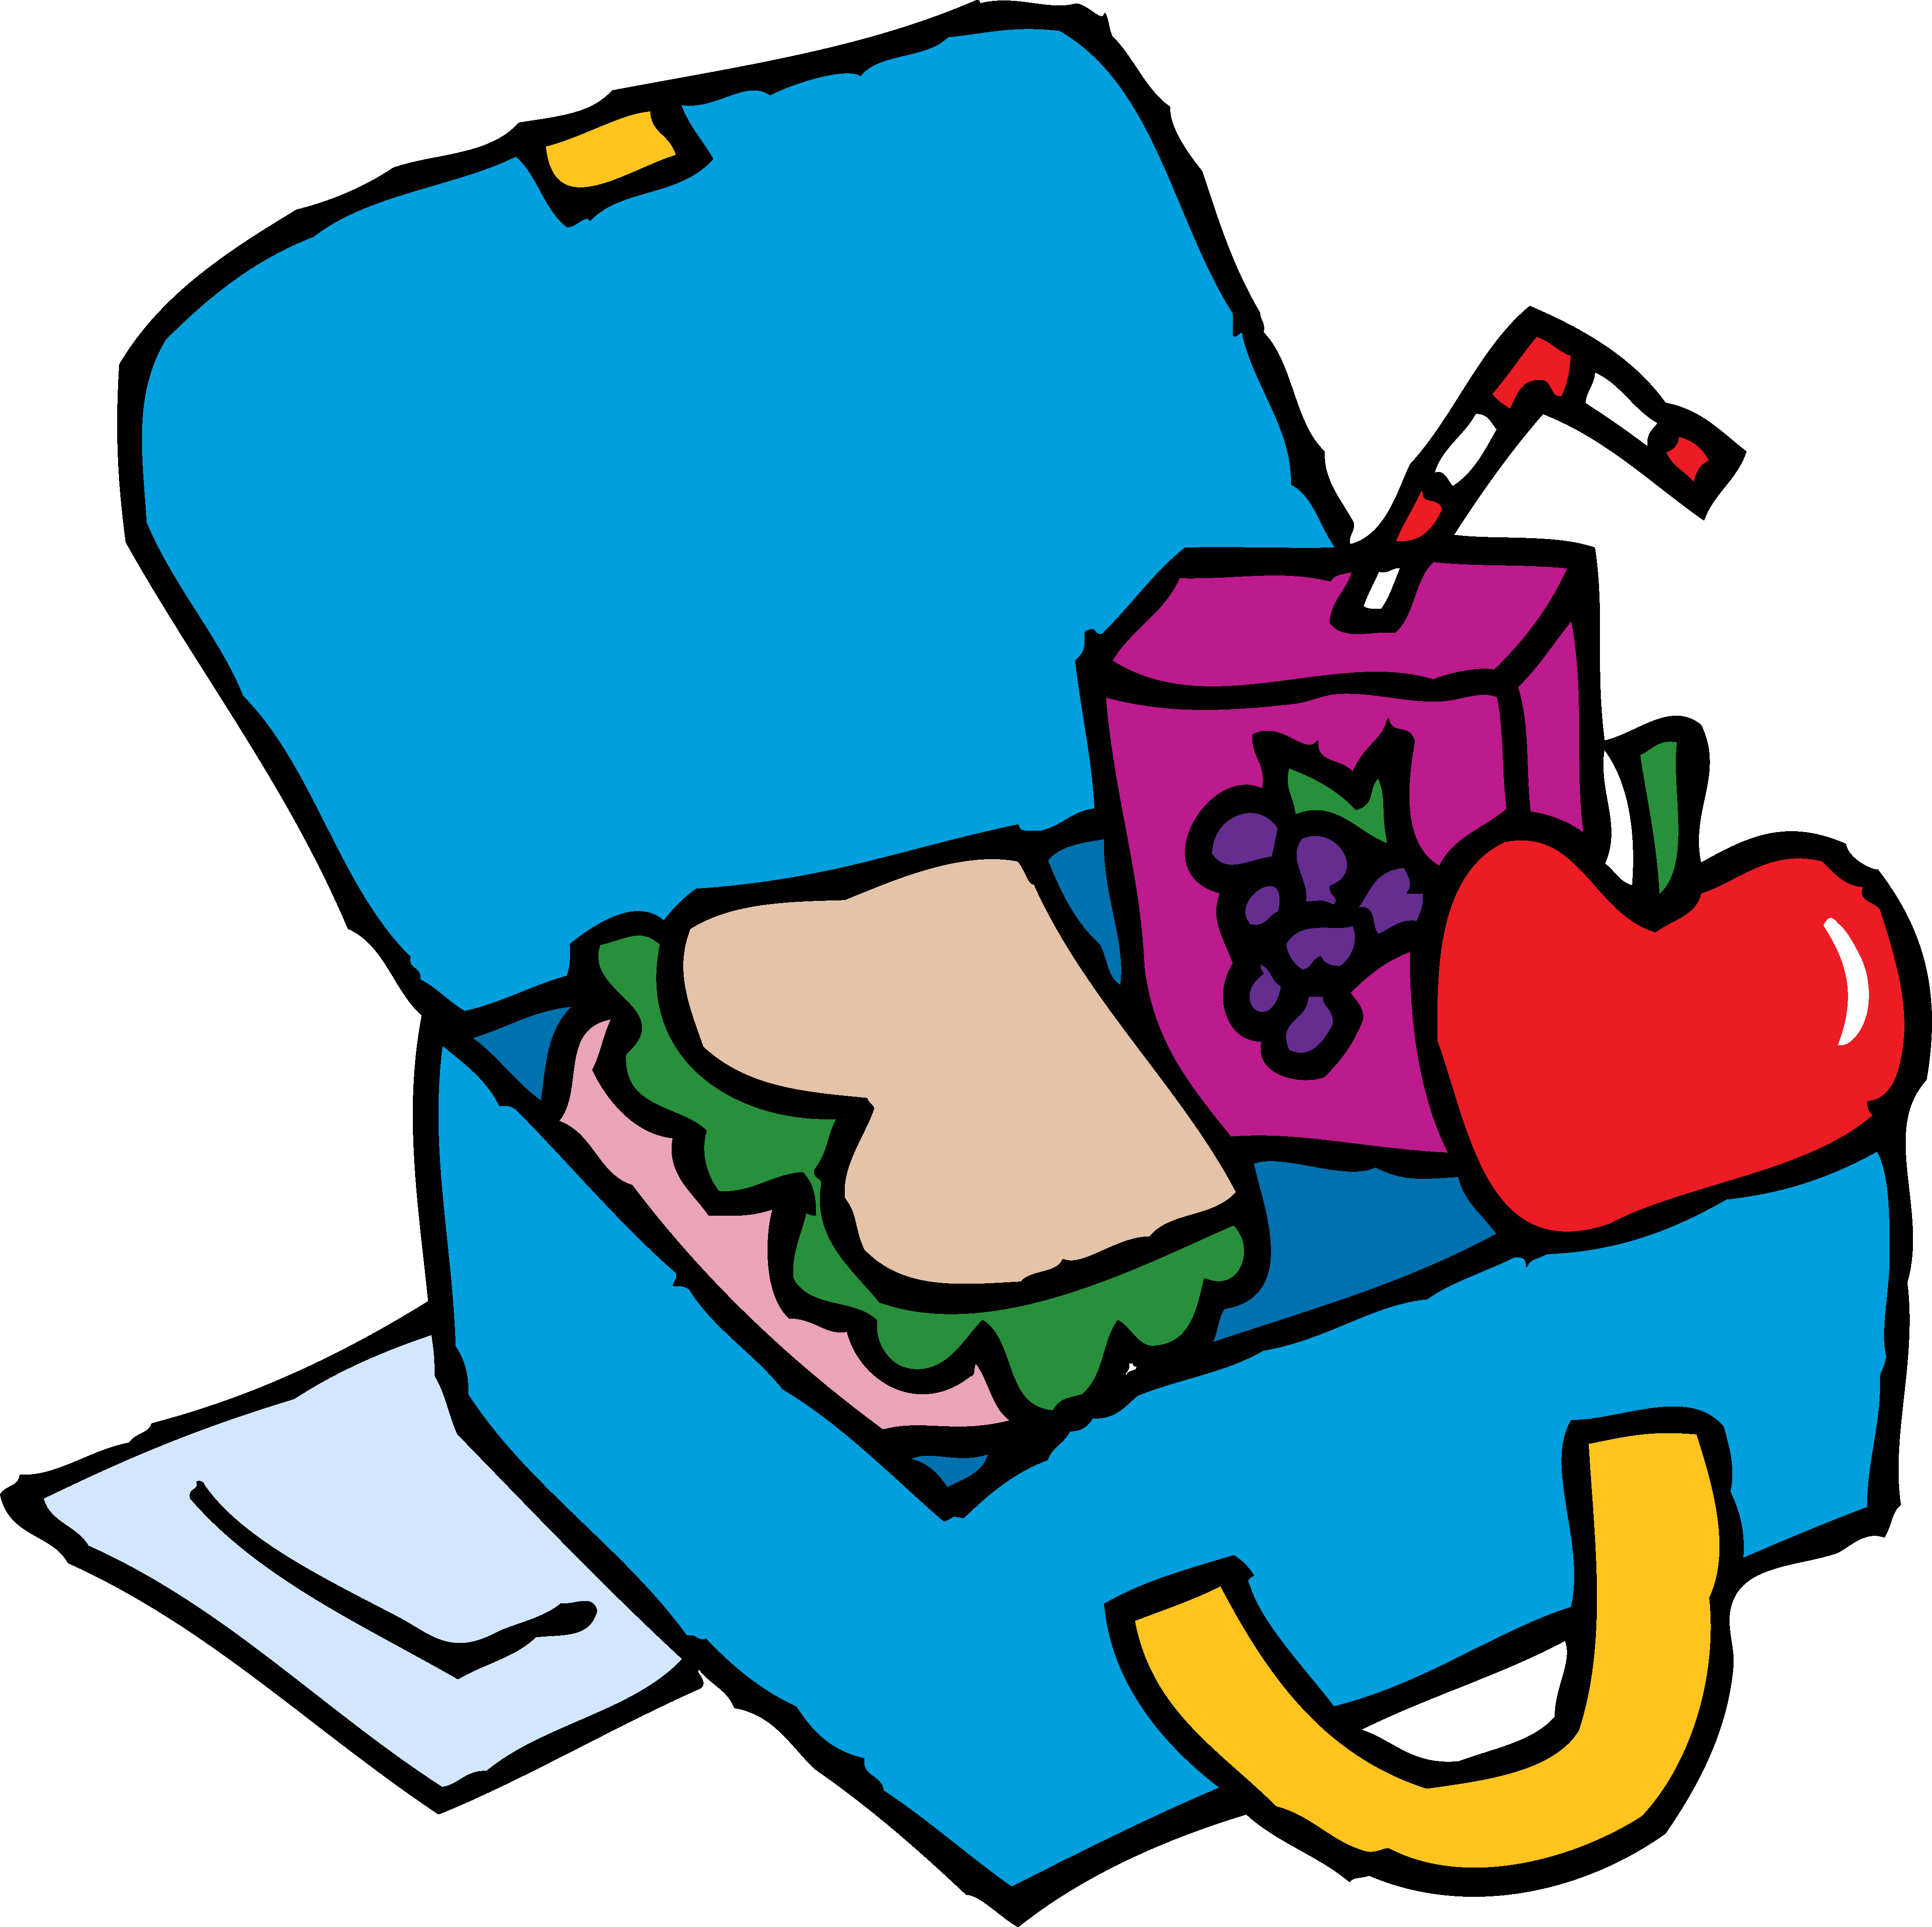 Lunch clipart lunch bag. Free images clipartix